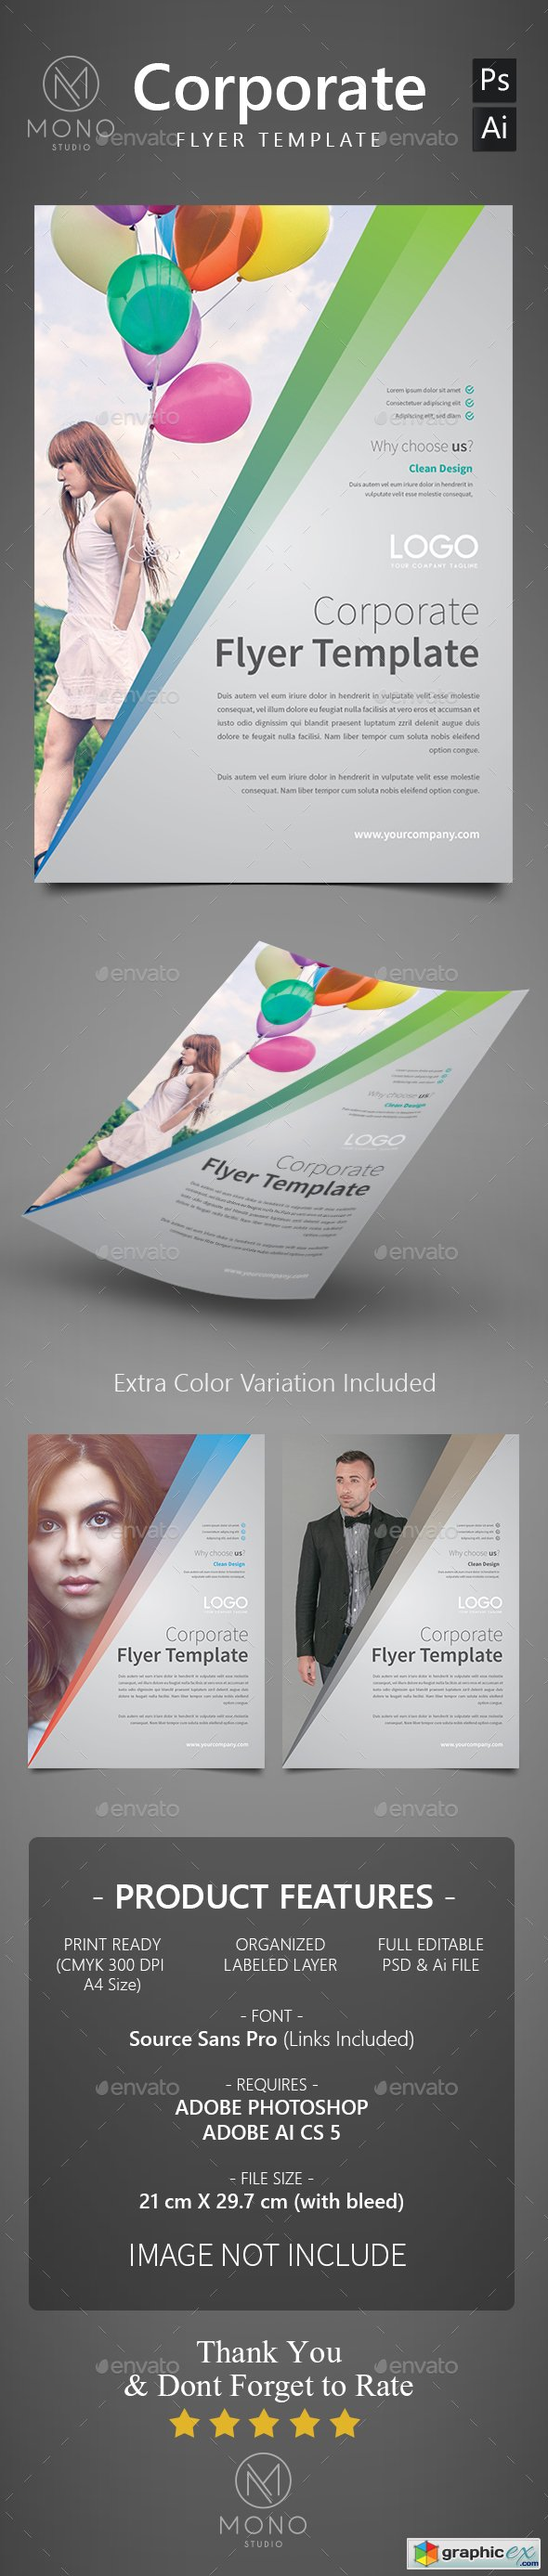 Corporate Flyer Template 8